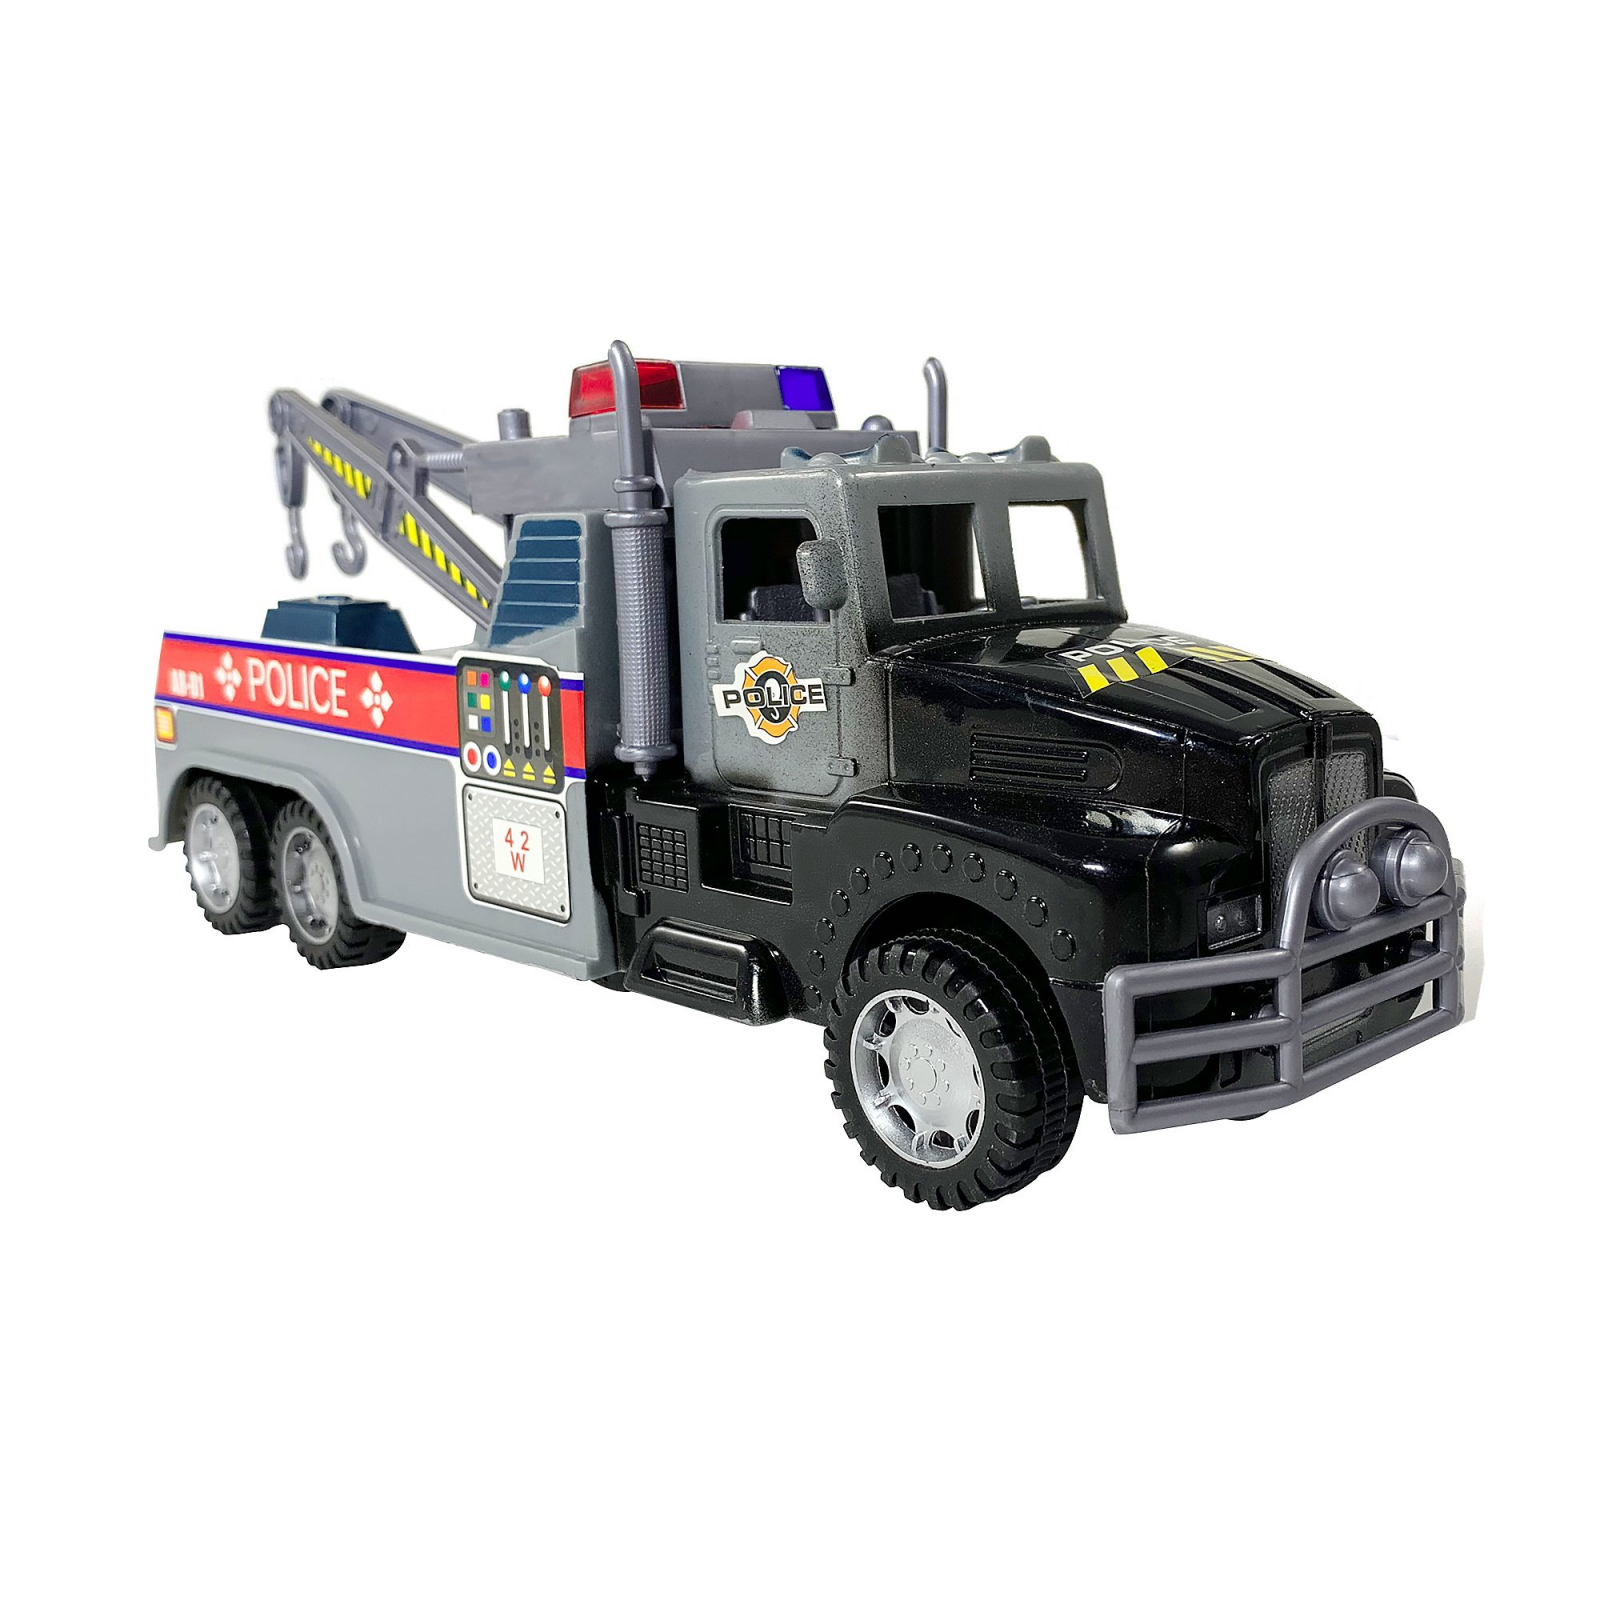 KidPlay Products Go Fast Police Impound Hauler - Black